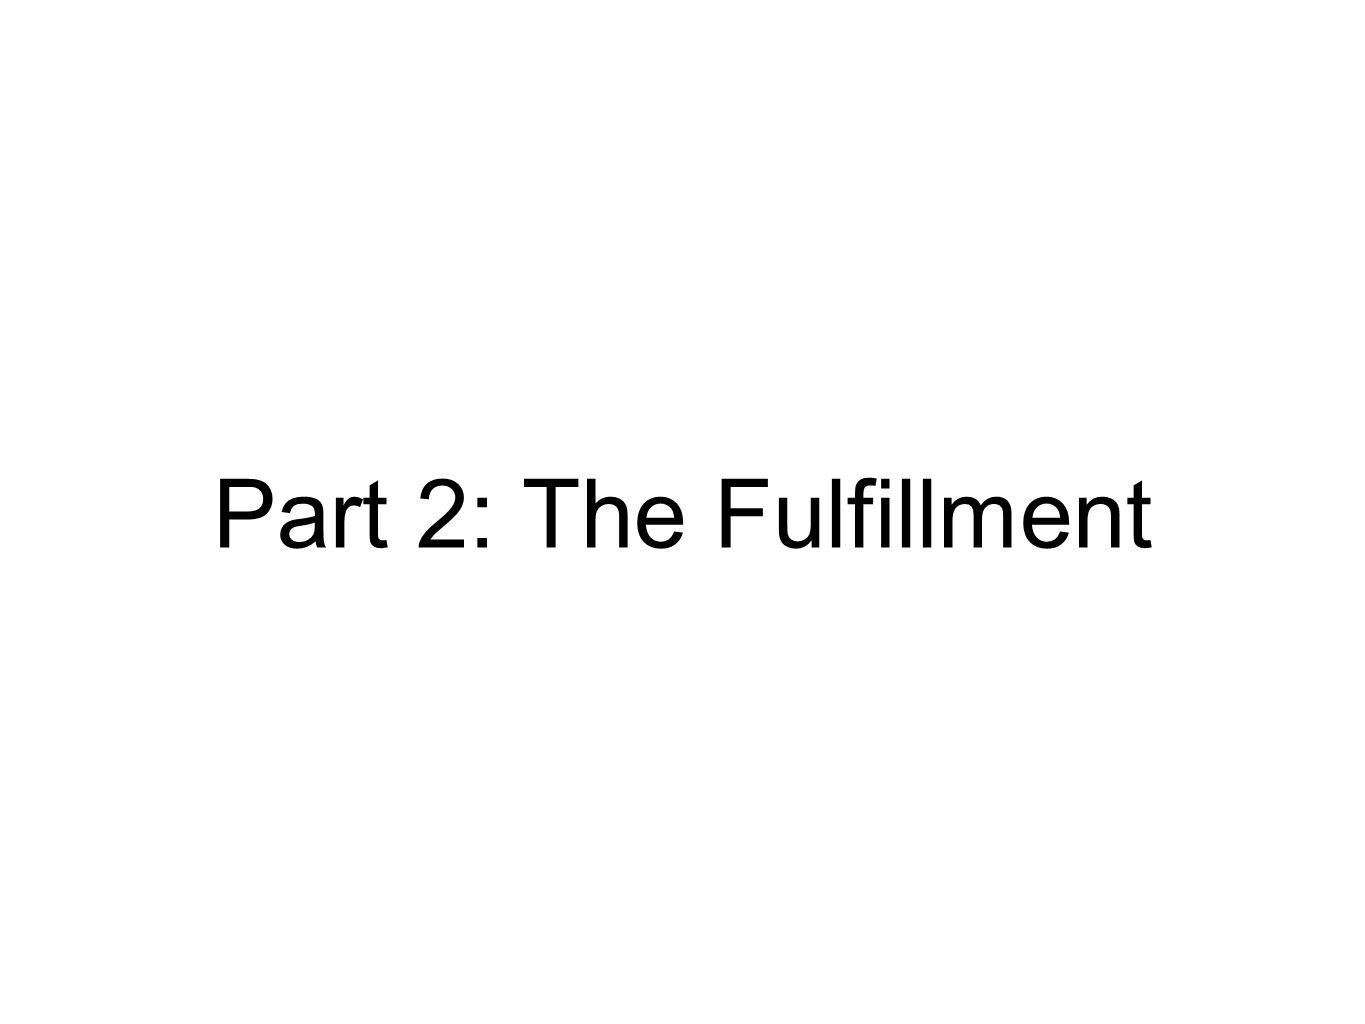 Part 2: The Fulfillment